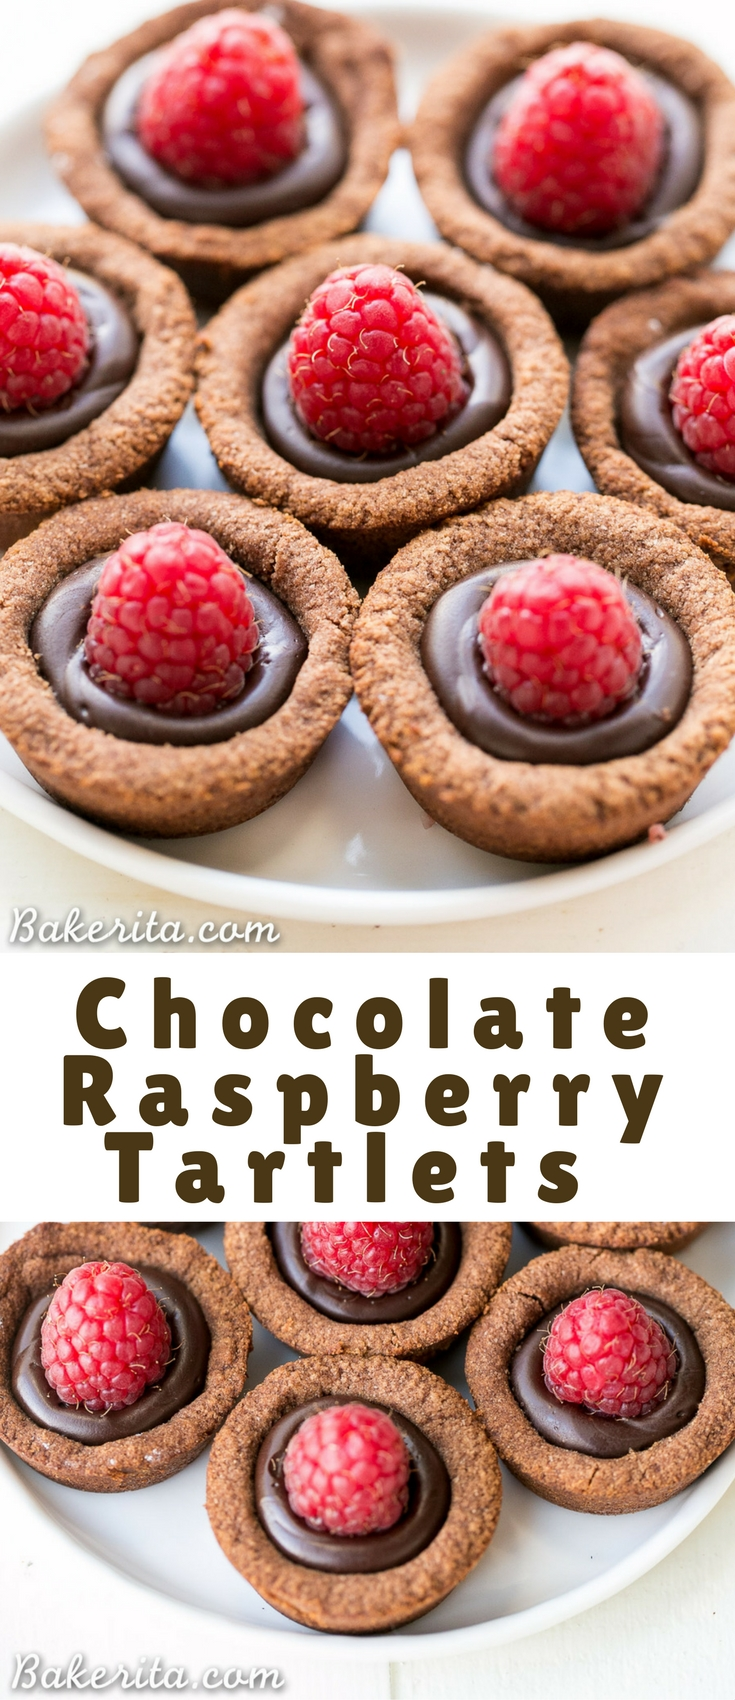 These Chocolate Raspberry Tartlets are super chocolatey bites – they have a chocolate shortbread crust filled with chocolate ganache and topped with a fresh raspberry.